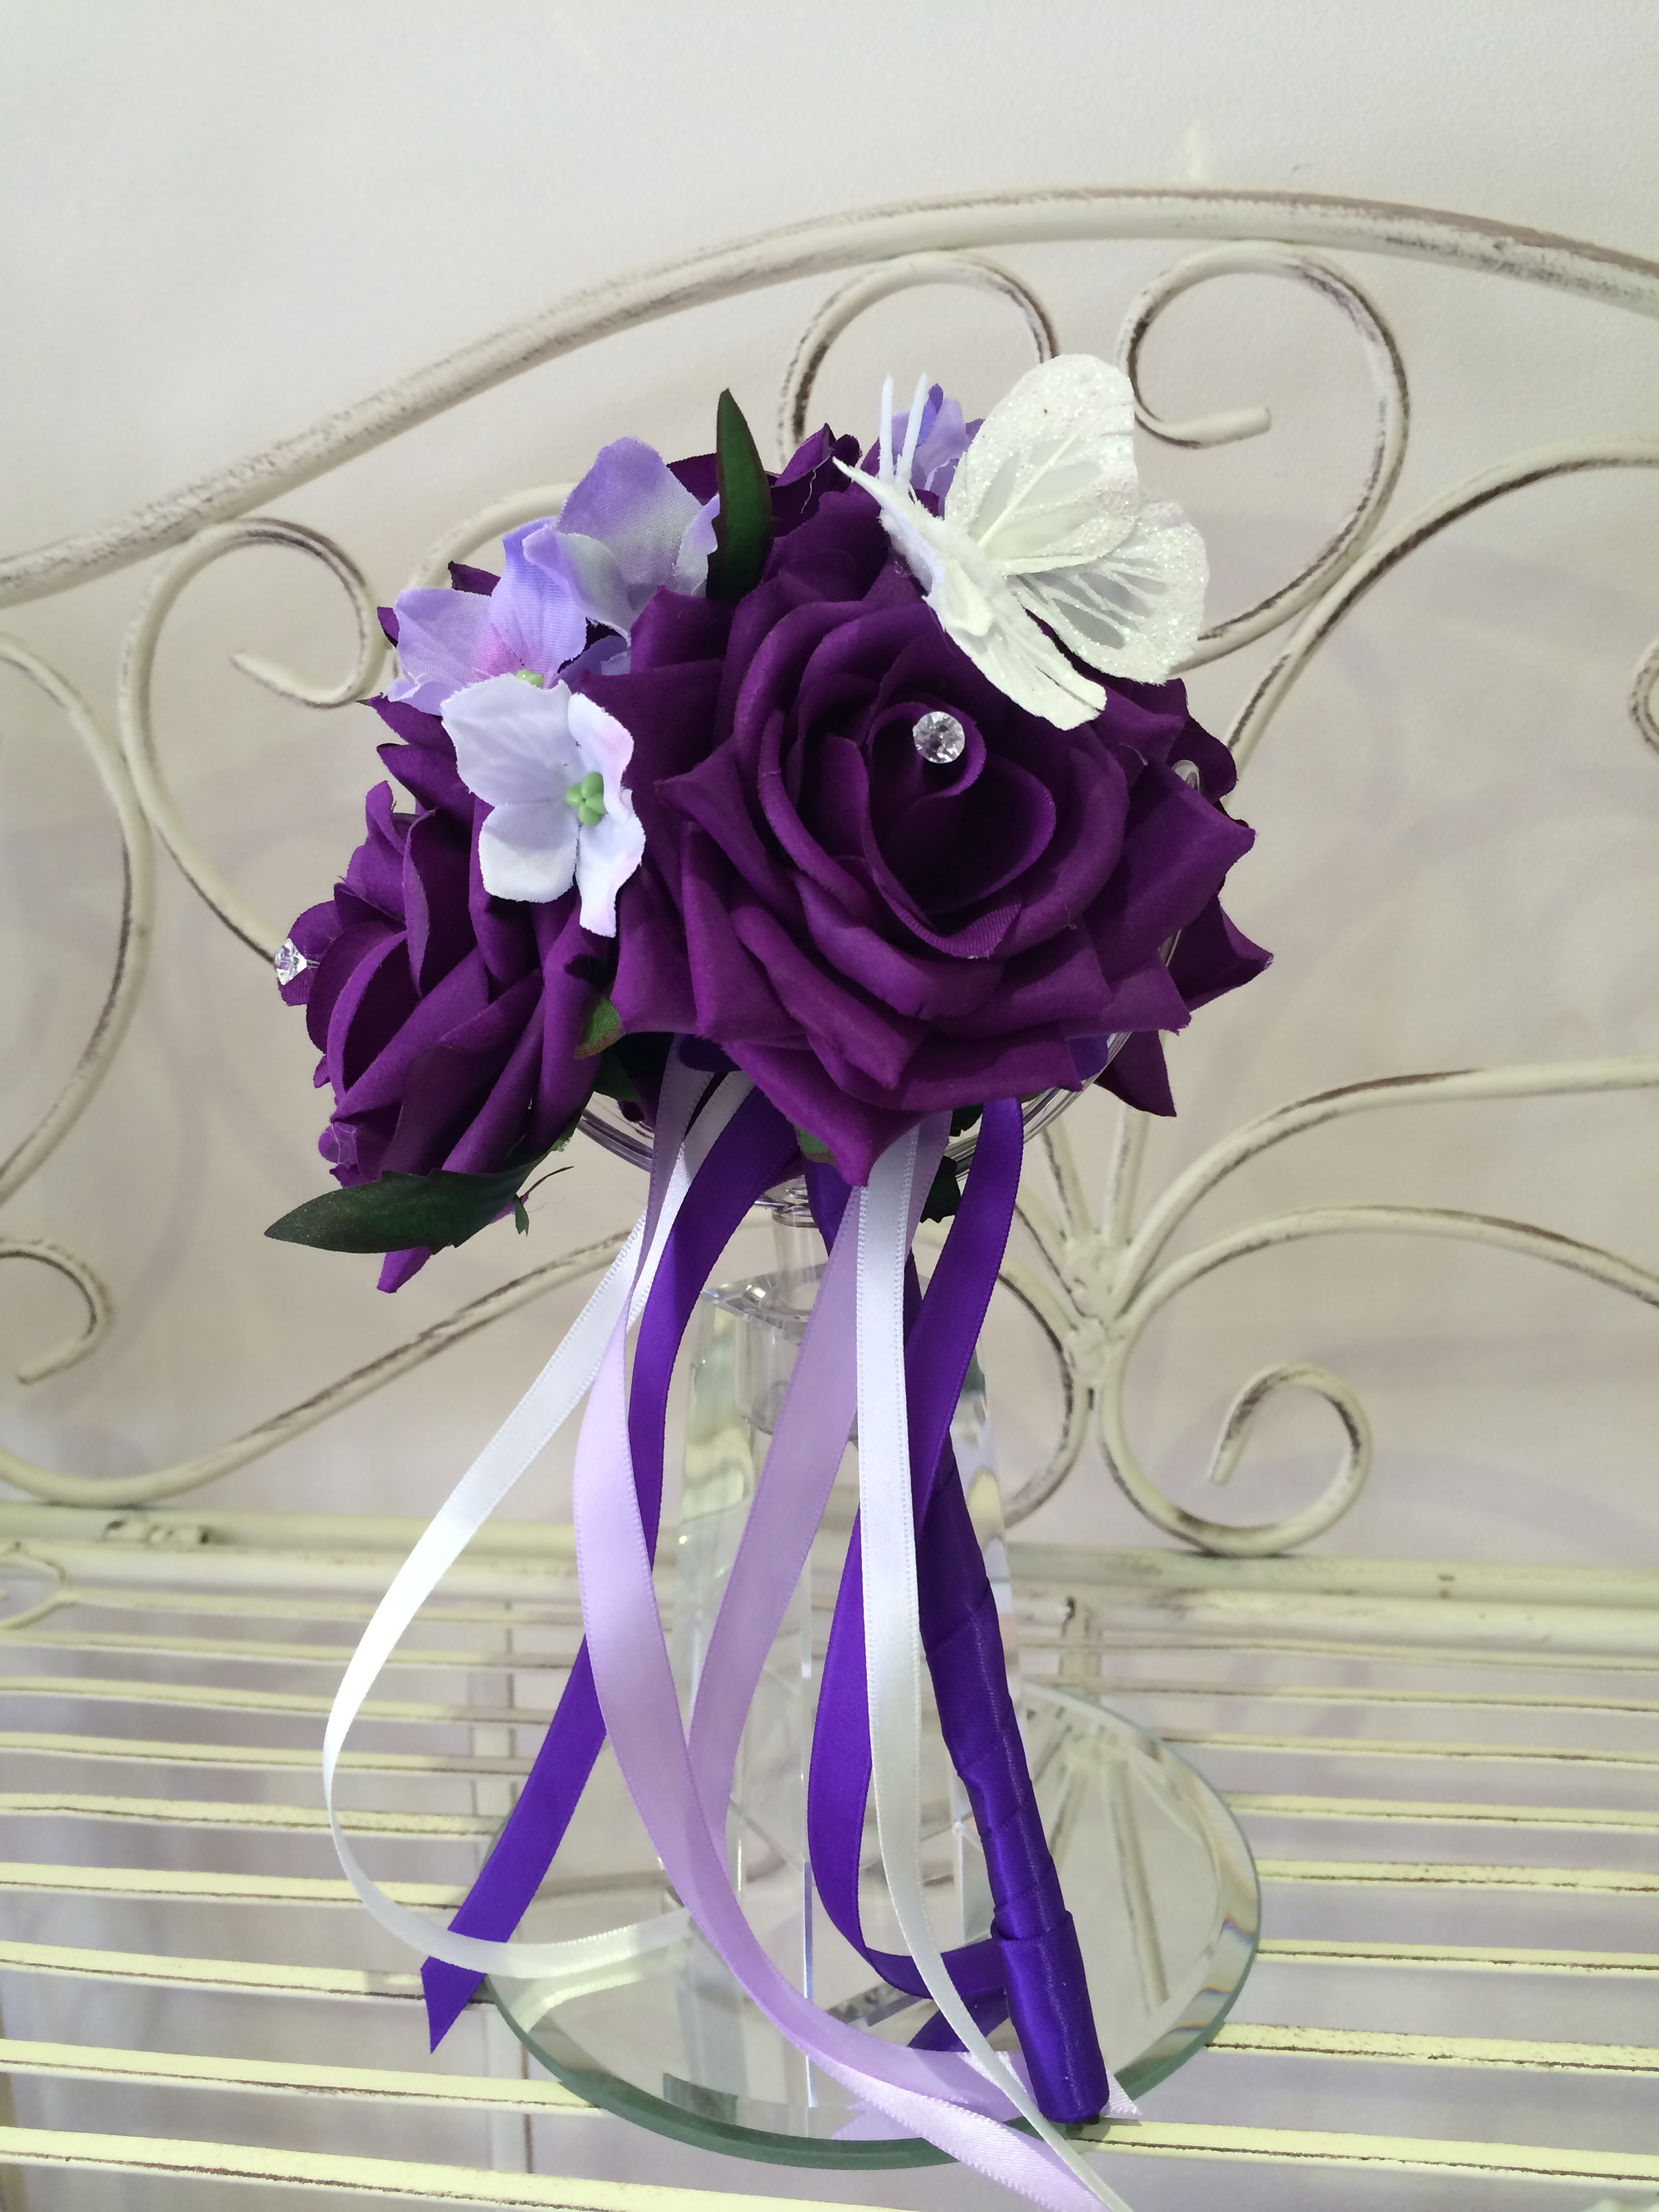 Flowergirl Wand With Cadbury Purple Roses with       Lilac Hydrangeas